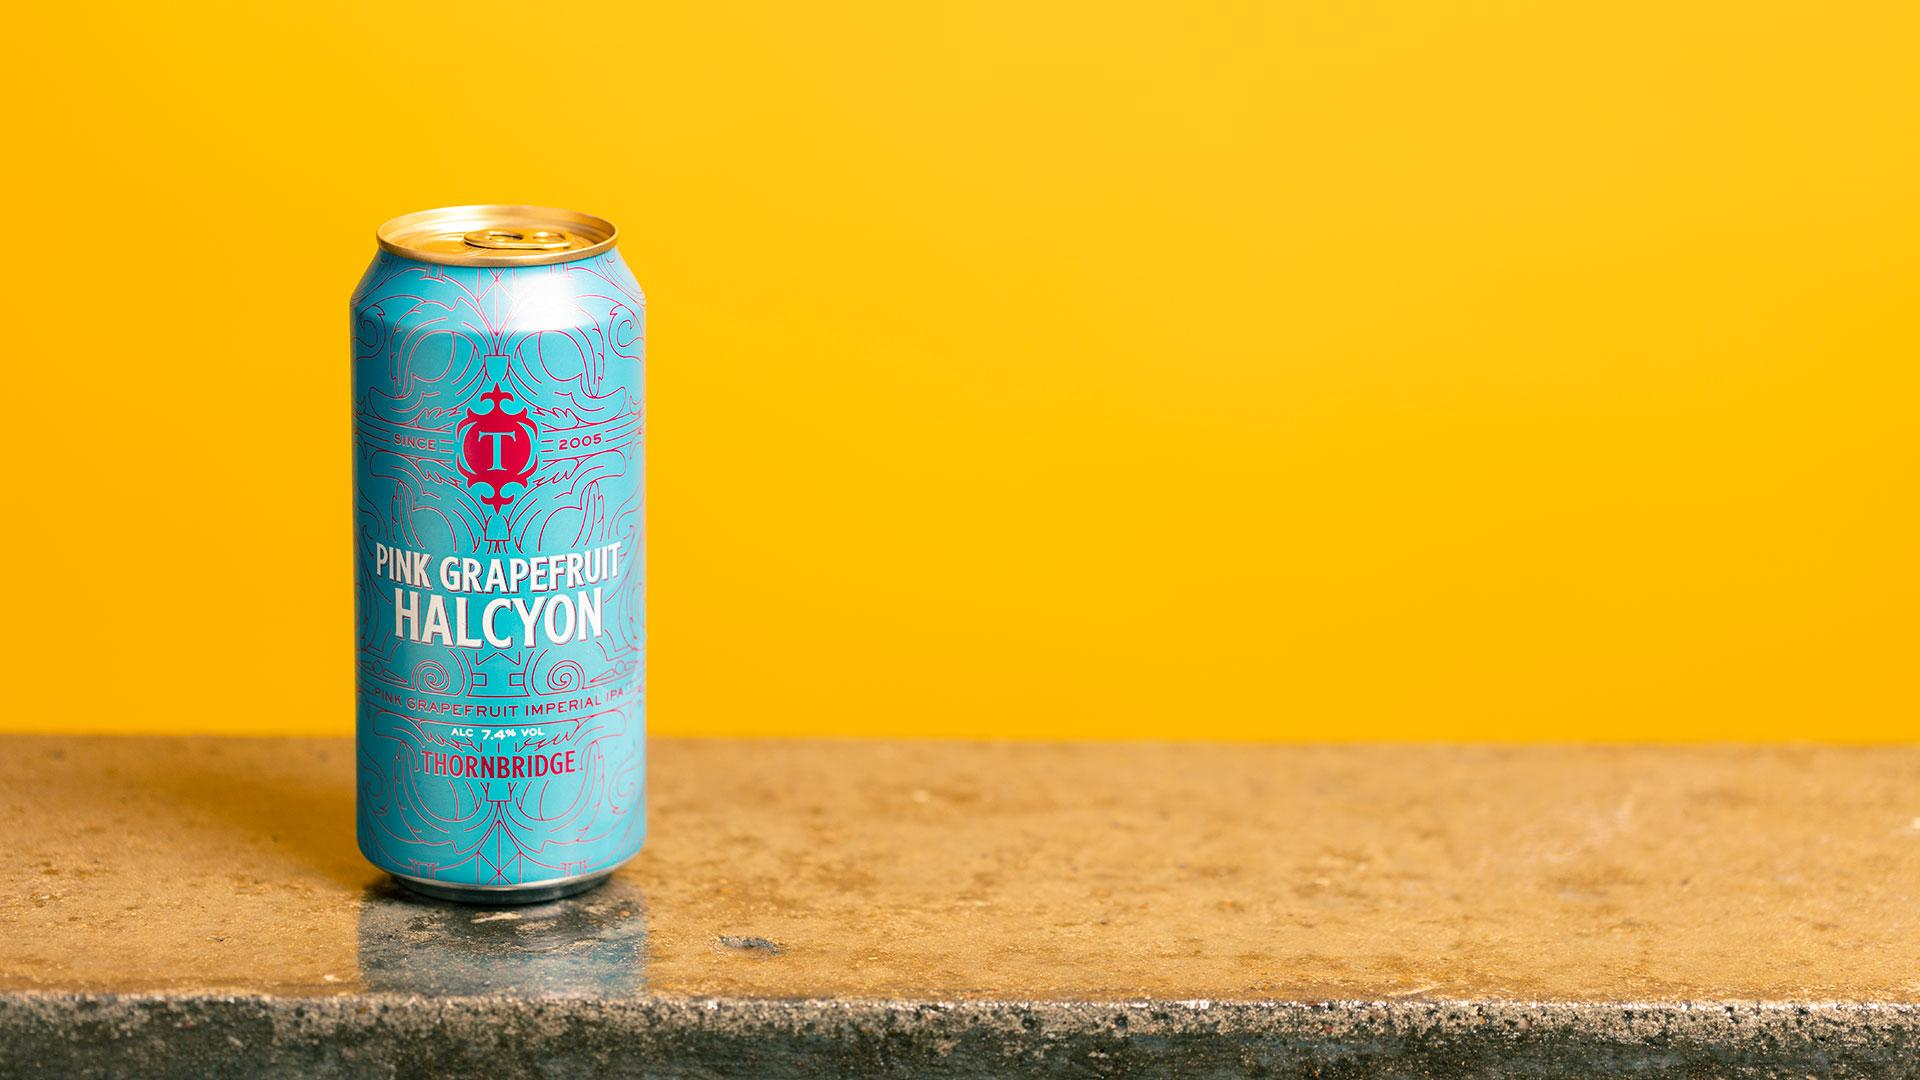 Tesco craft beer: Thornbridge Pink Grapefruit Halcyon